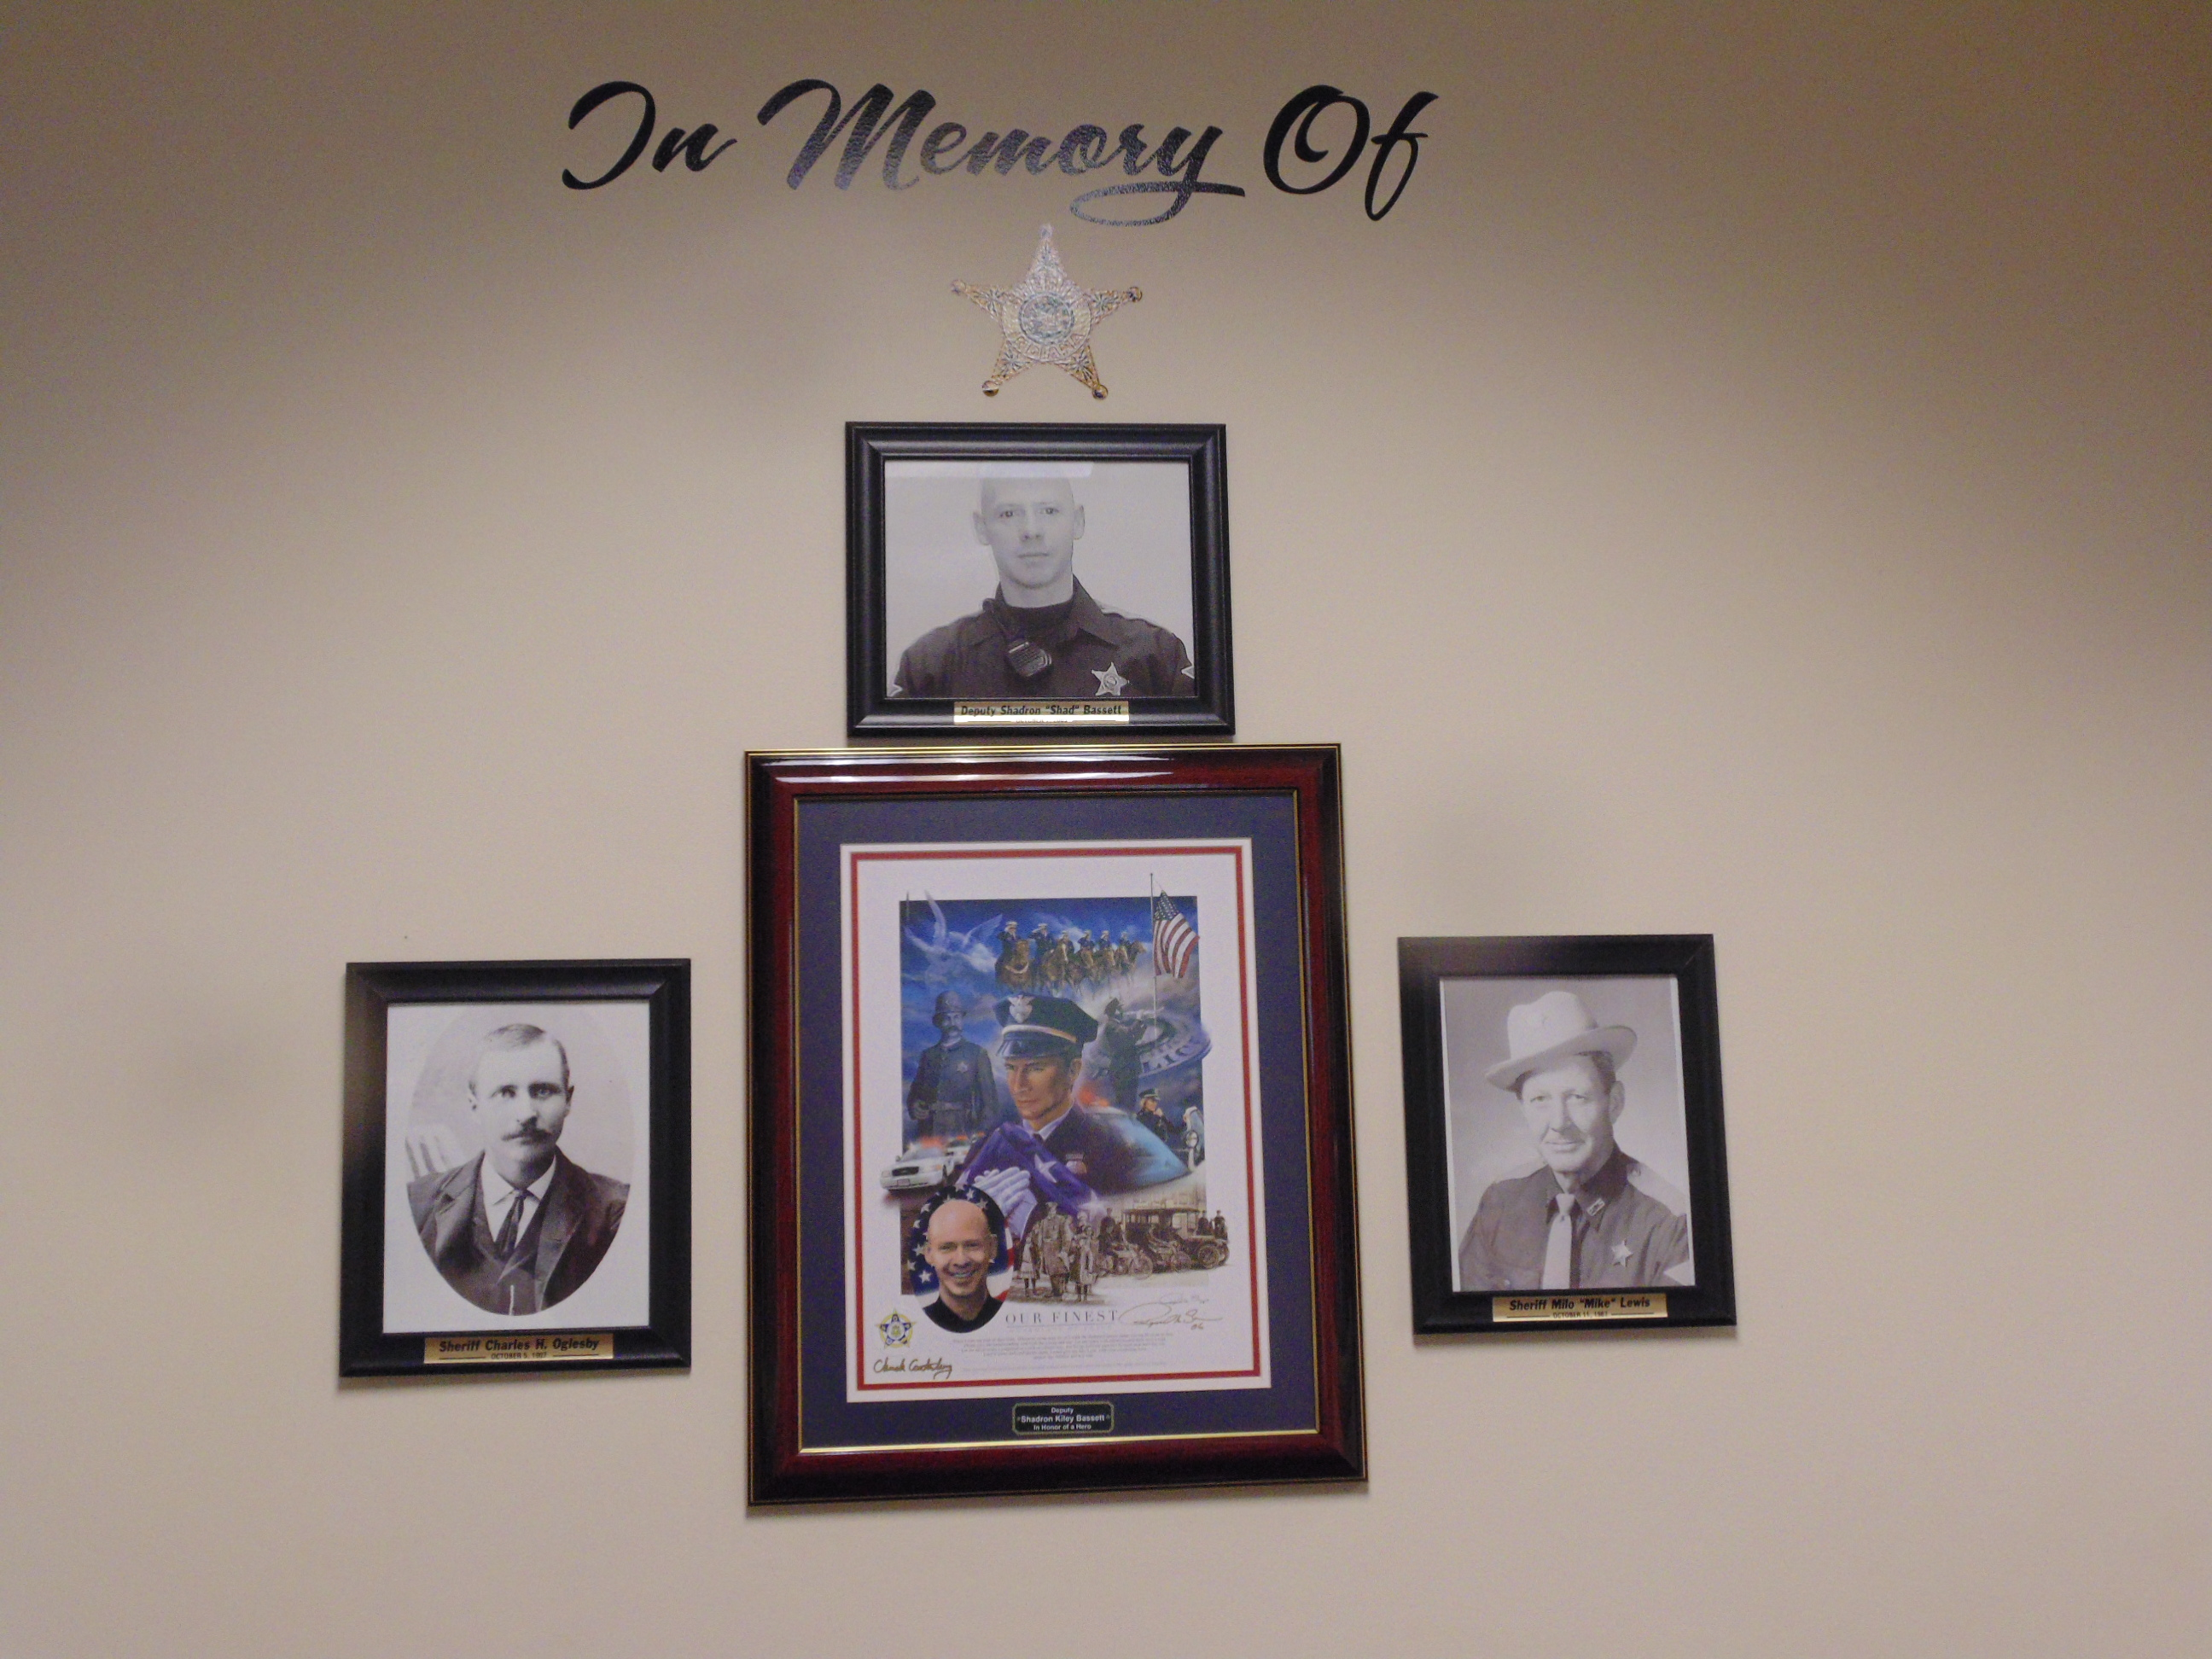 Indiana pulaski county francesville - Pulaski County Police Officers Who Died In The Line Of Duty Will Be Honored During A Memorial Service Next Week The Sheriff S Office Will Hold Its Annual